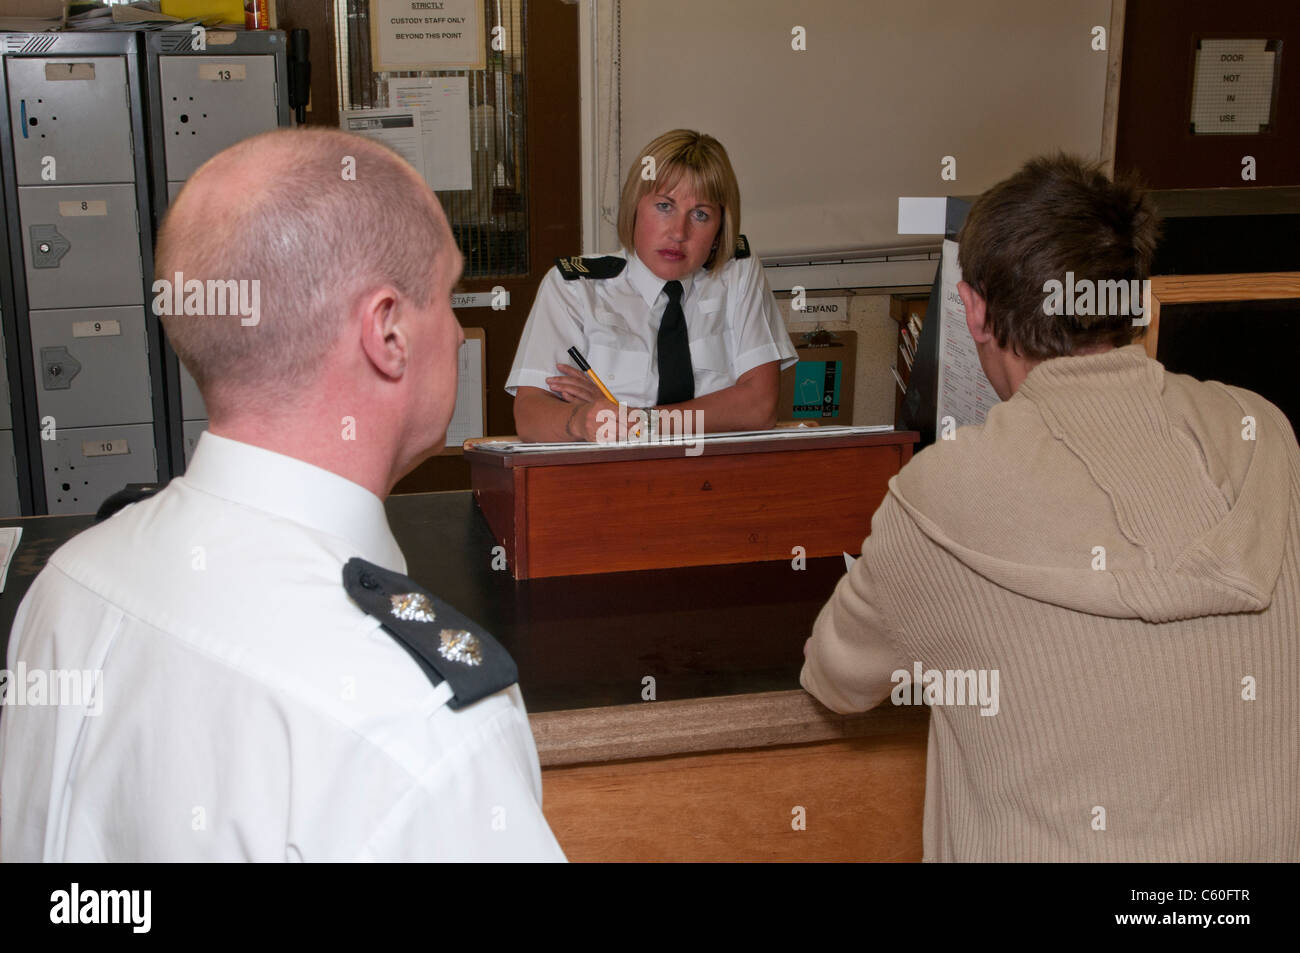 Police interview white male suspect - Stock Image